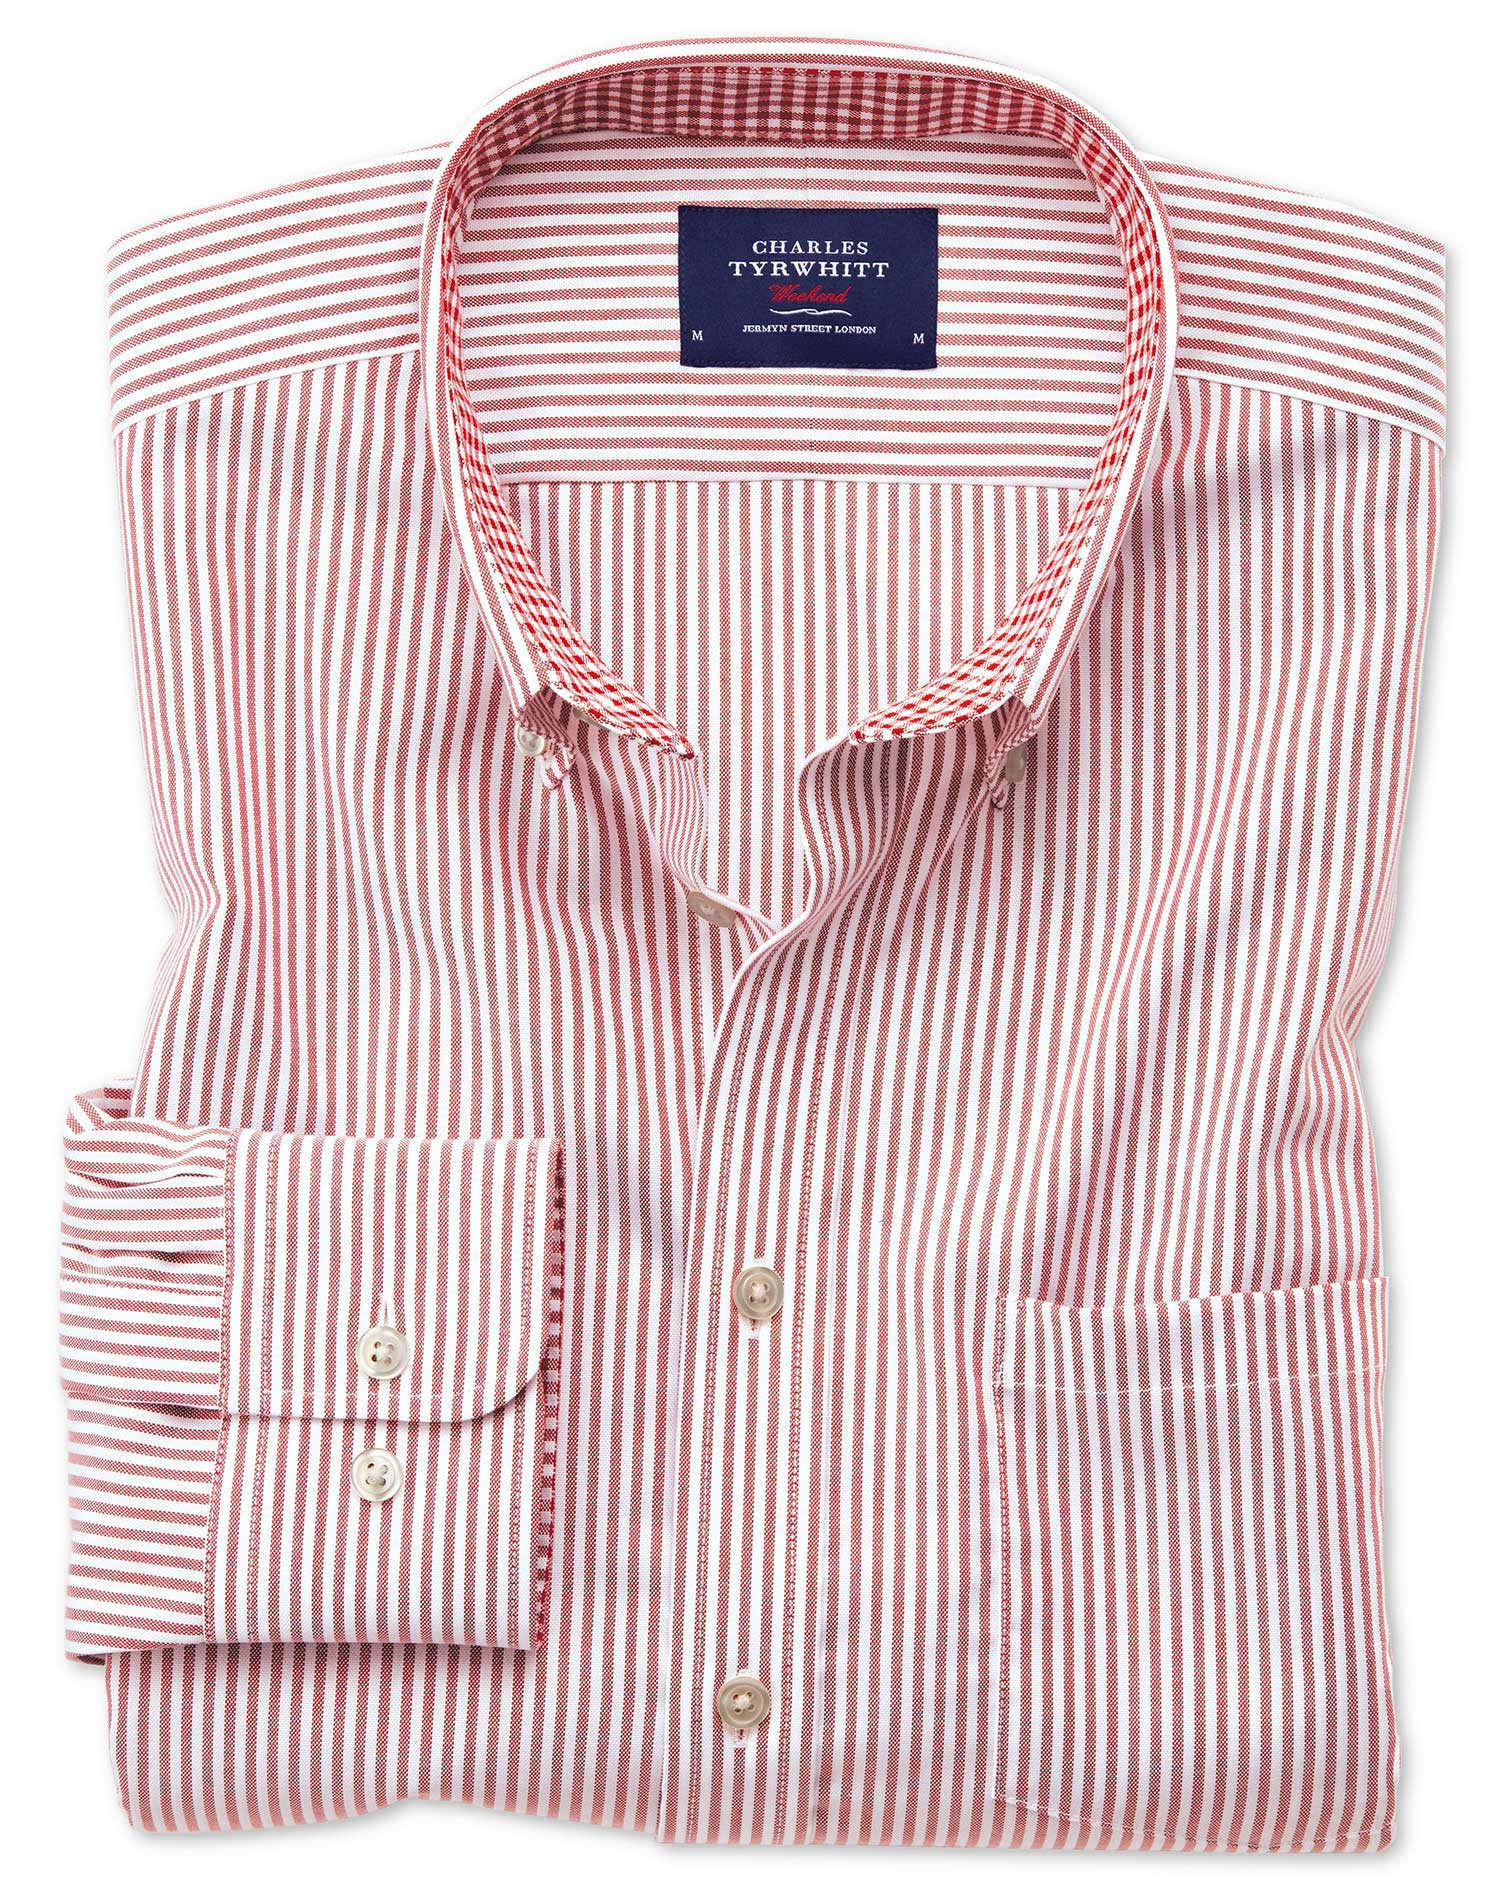 Classic Fit Button-Down Non-Iron Oxford Bengal Stripe Rust Cotton Shirt Single Cuff Size XL by Charl